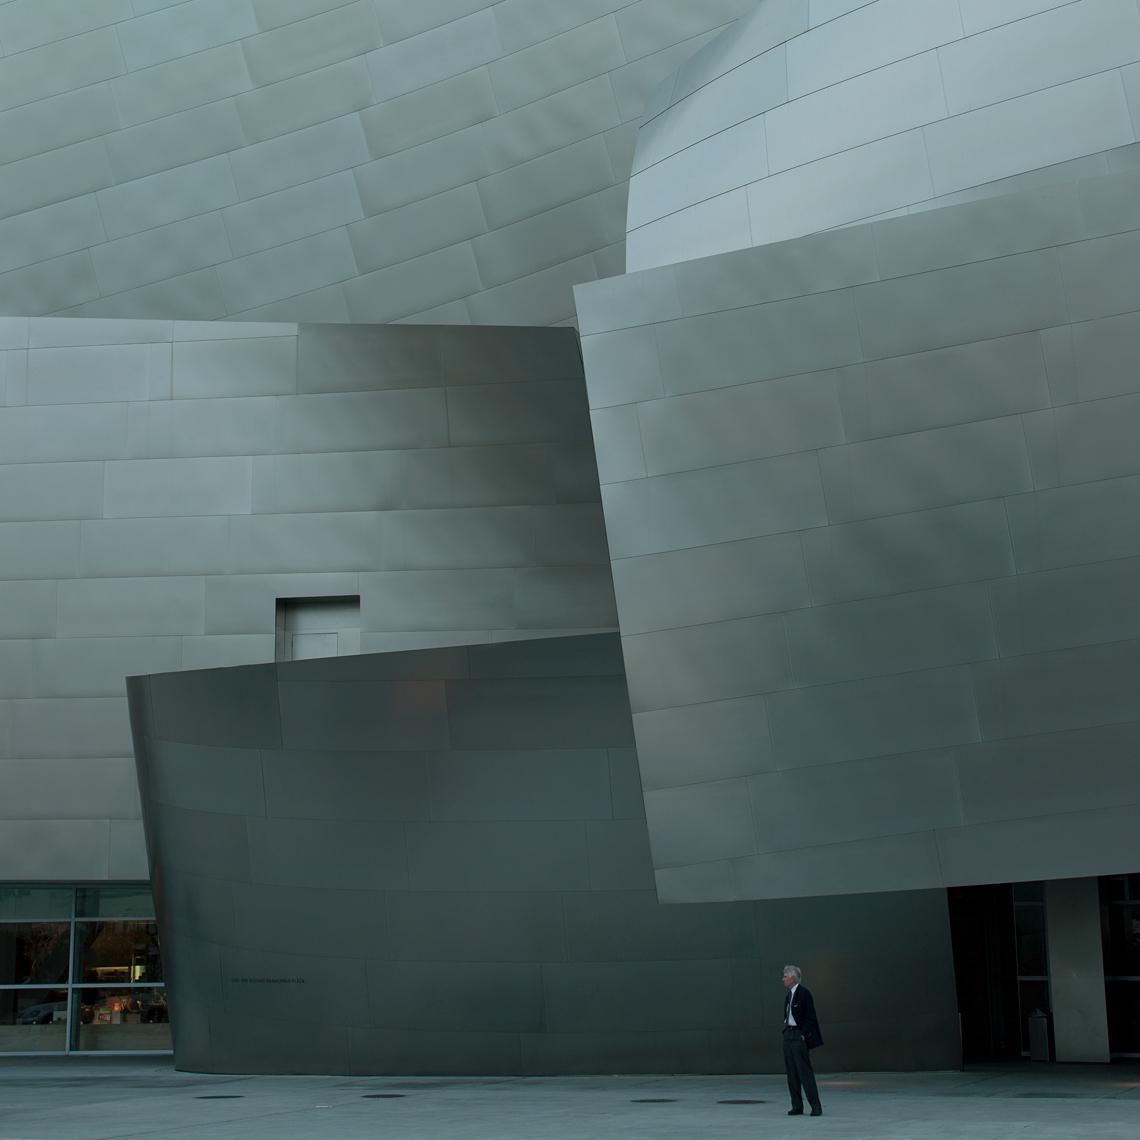 Walt-Disney-Concert-Hall-Frank-Gehry-Poul-Ober-Photography